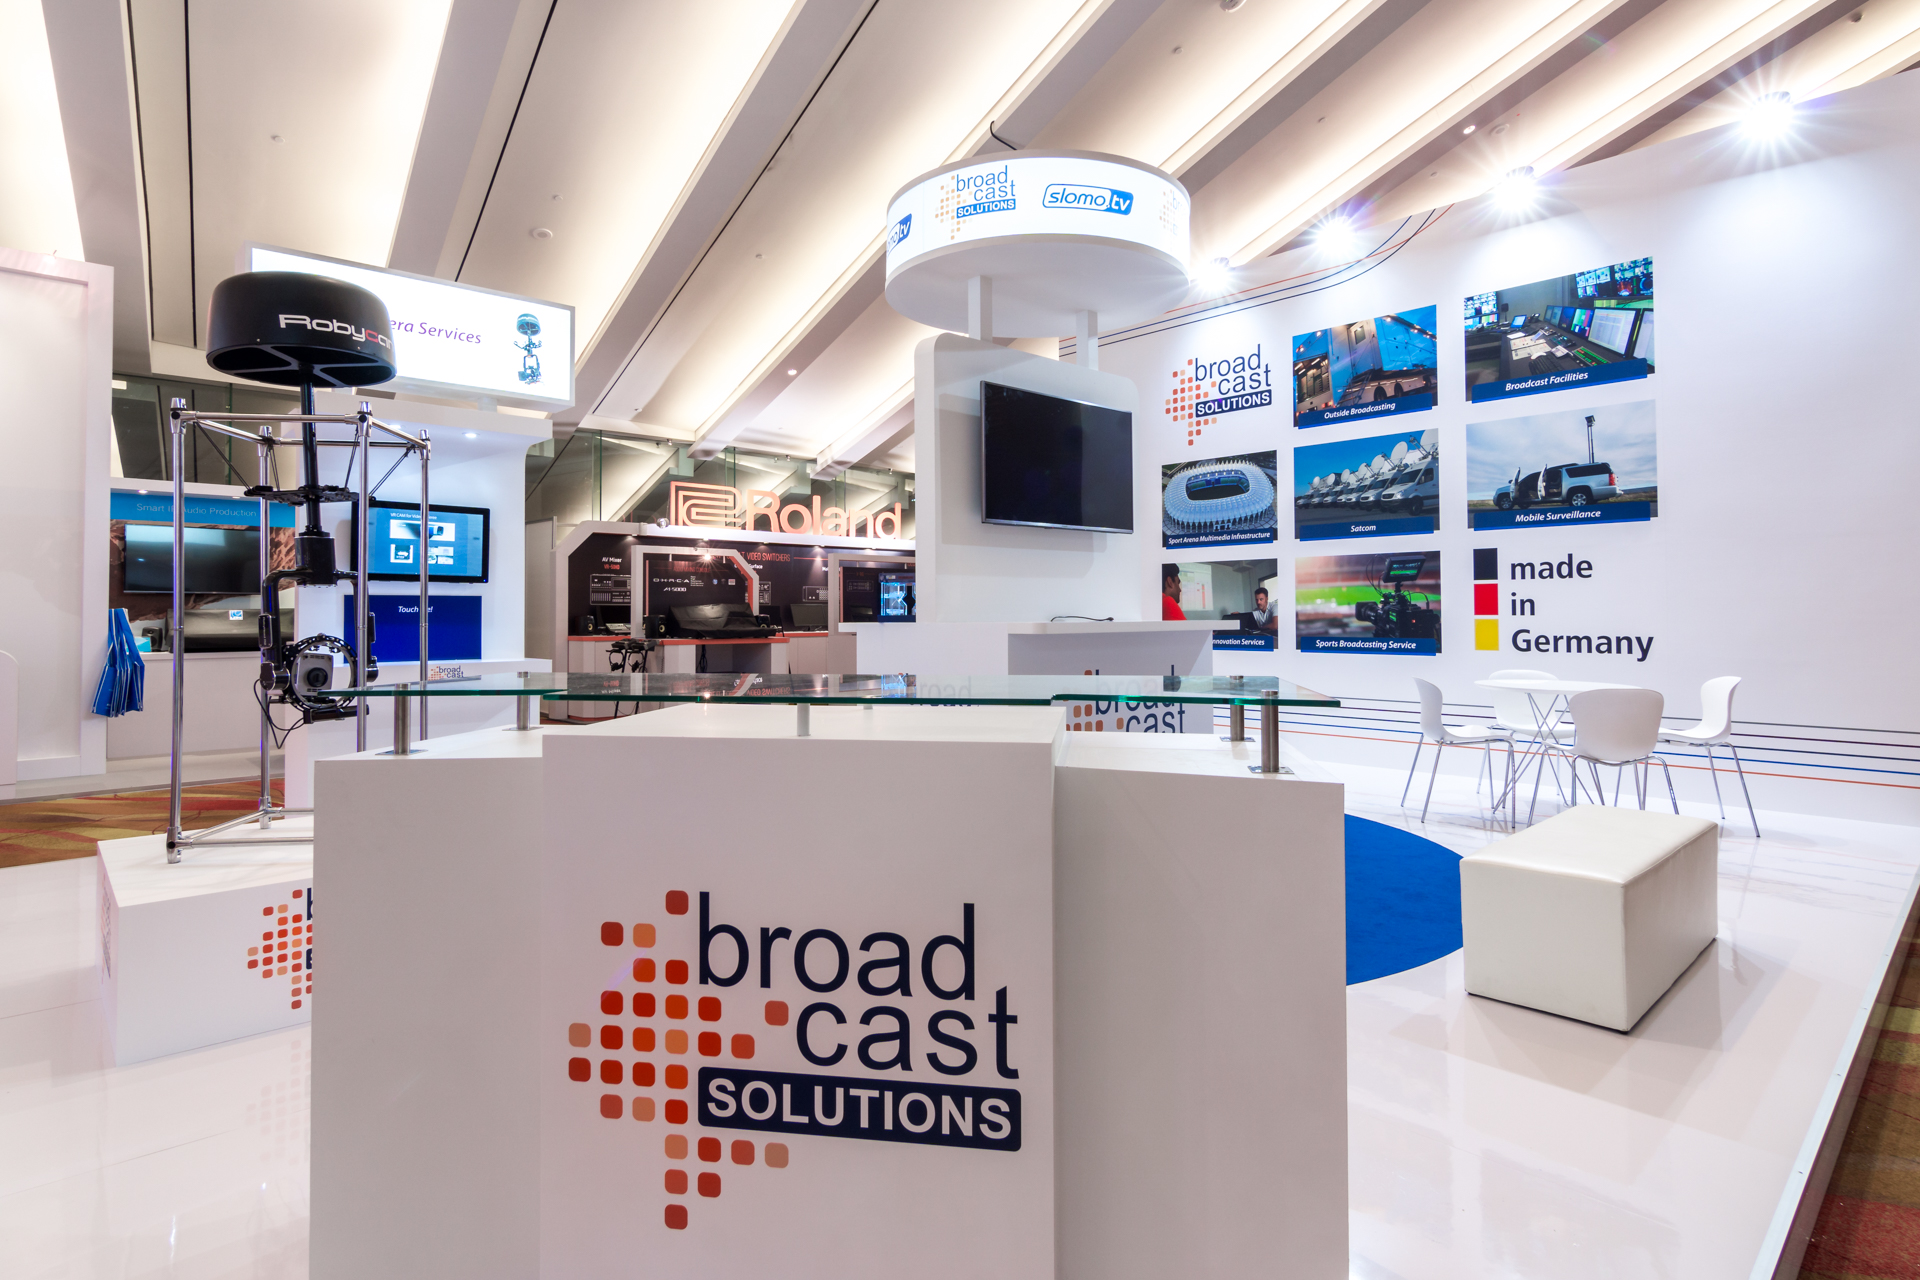 Exhibition Booth Singapore : Broadcast solutions exhibition booth punktlandung events